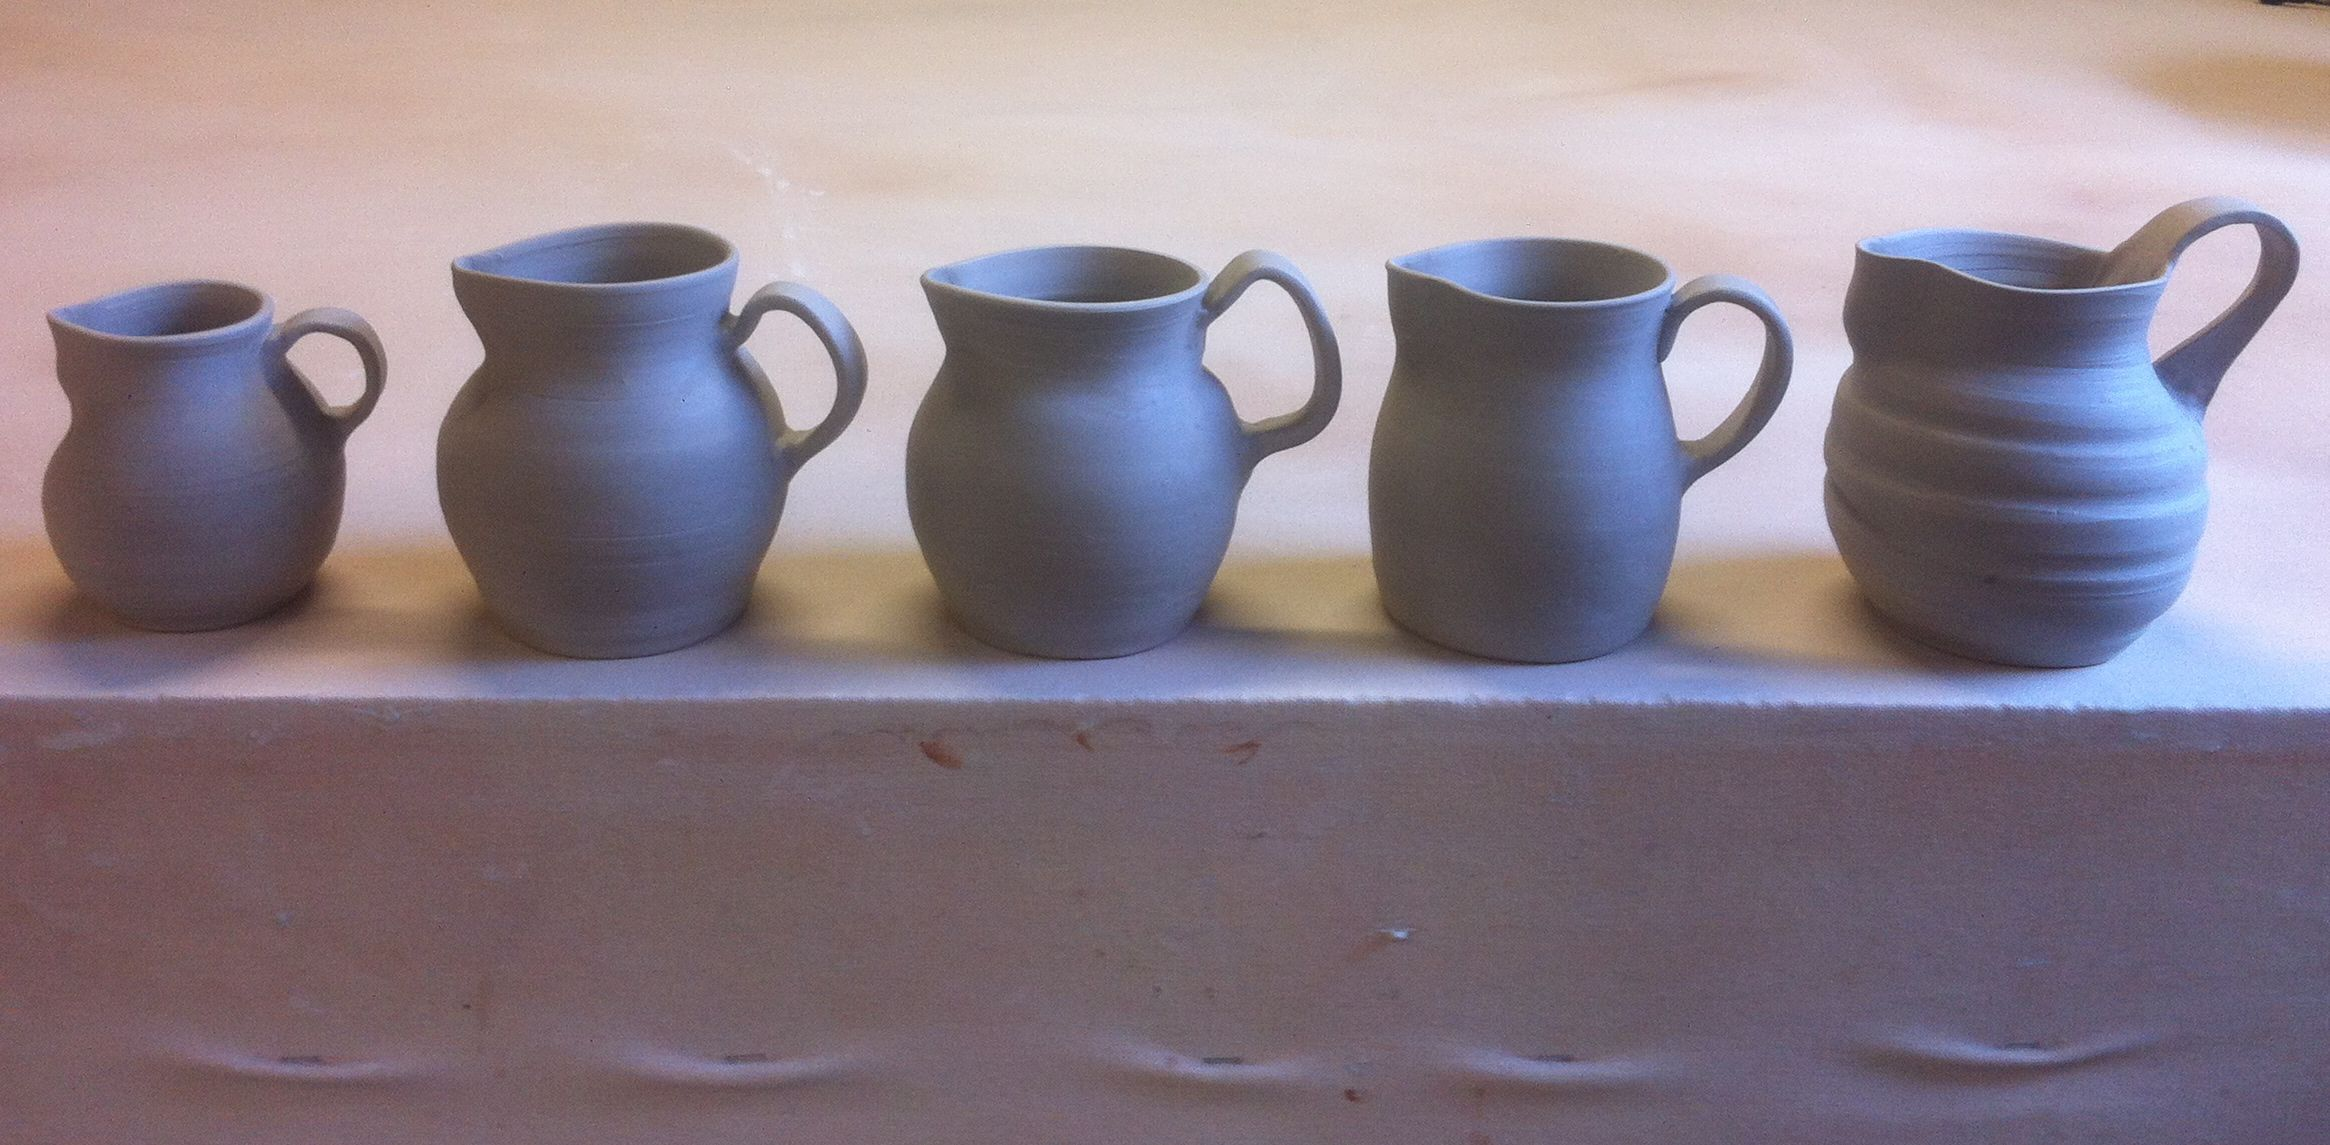 greenware pitchers